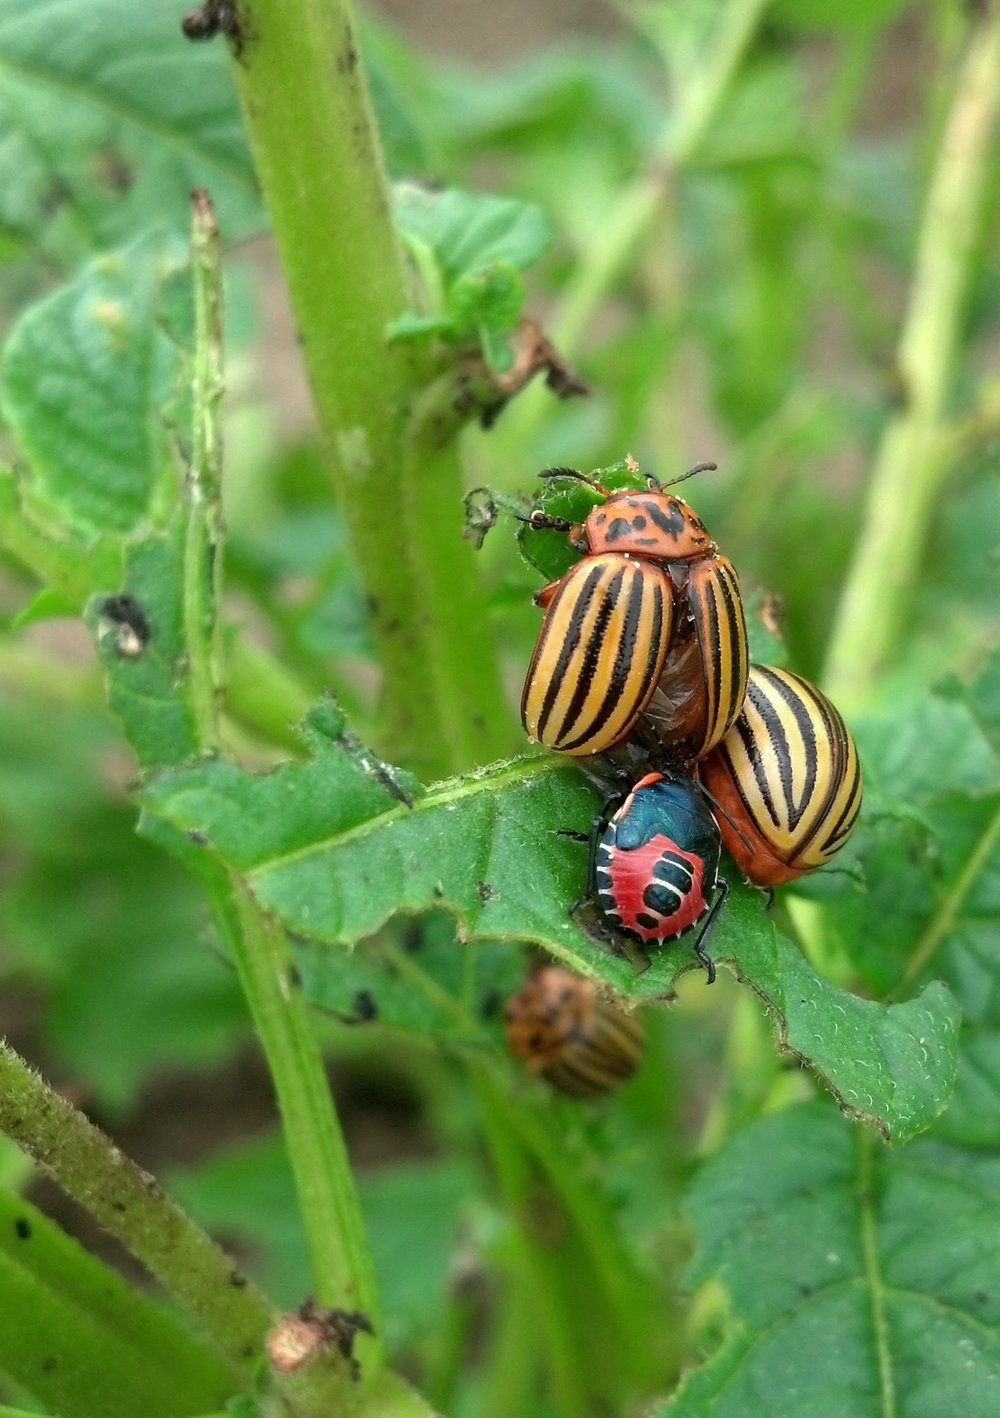 Fifth Instar  Perillus  nymph feeds on an adult Colorado potato beetle.